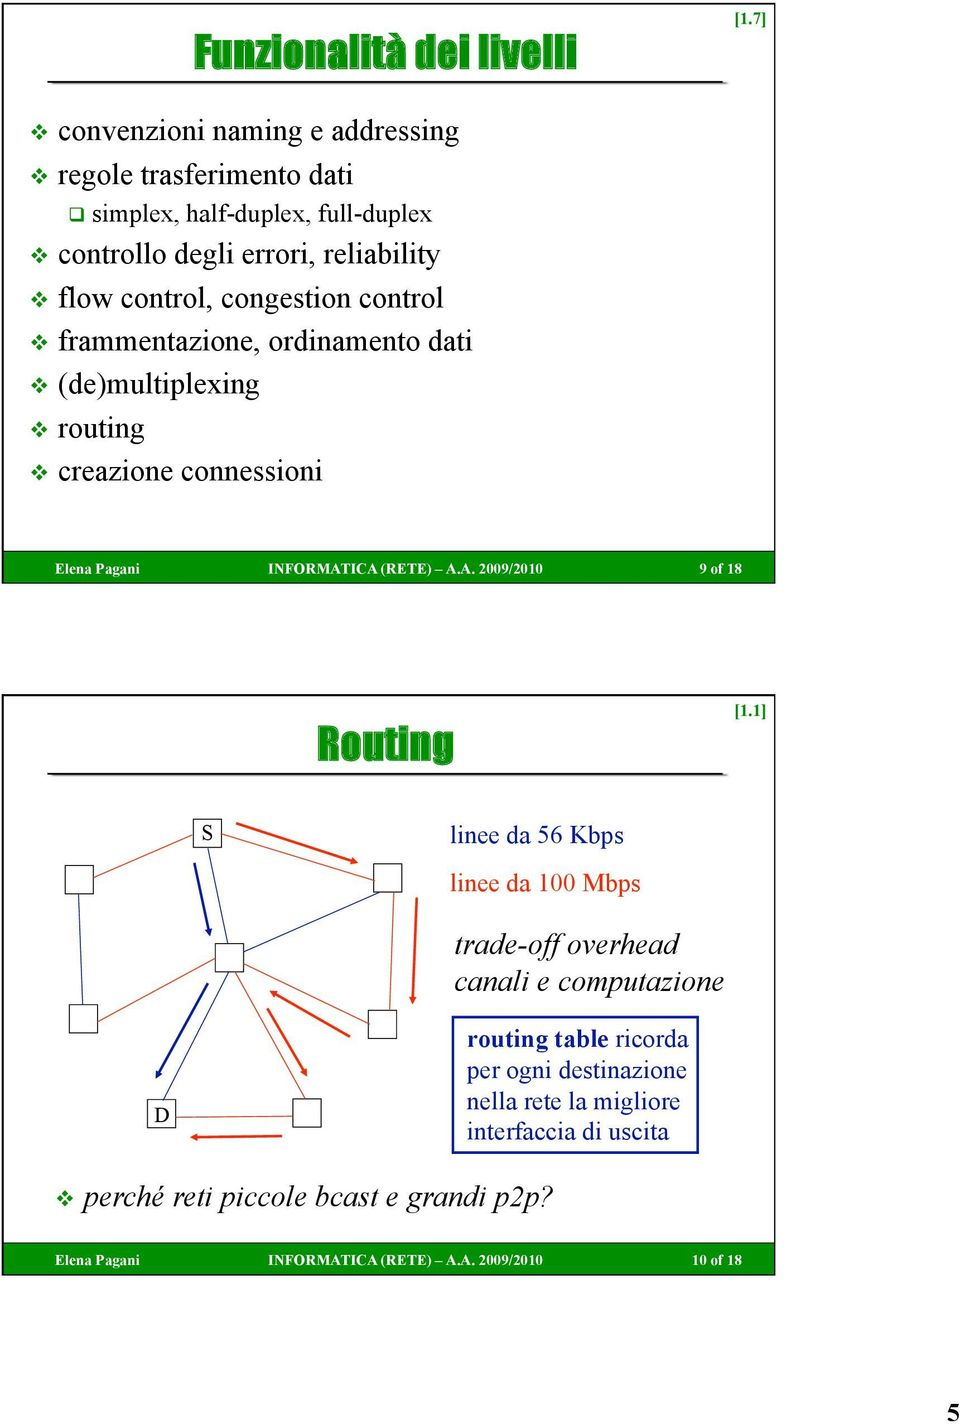 connessioni 9 of 18 Routing [1.